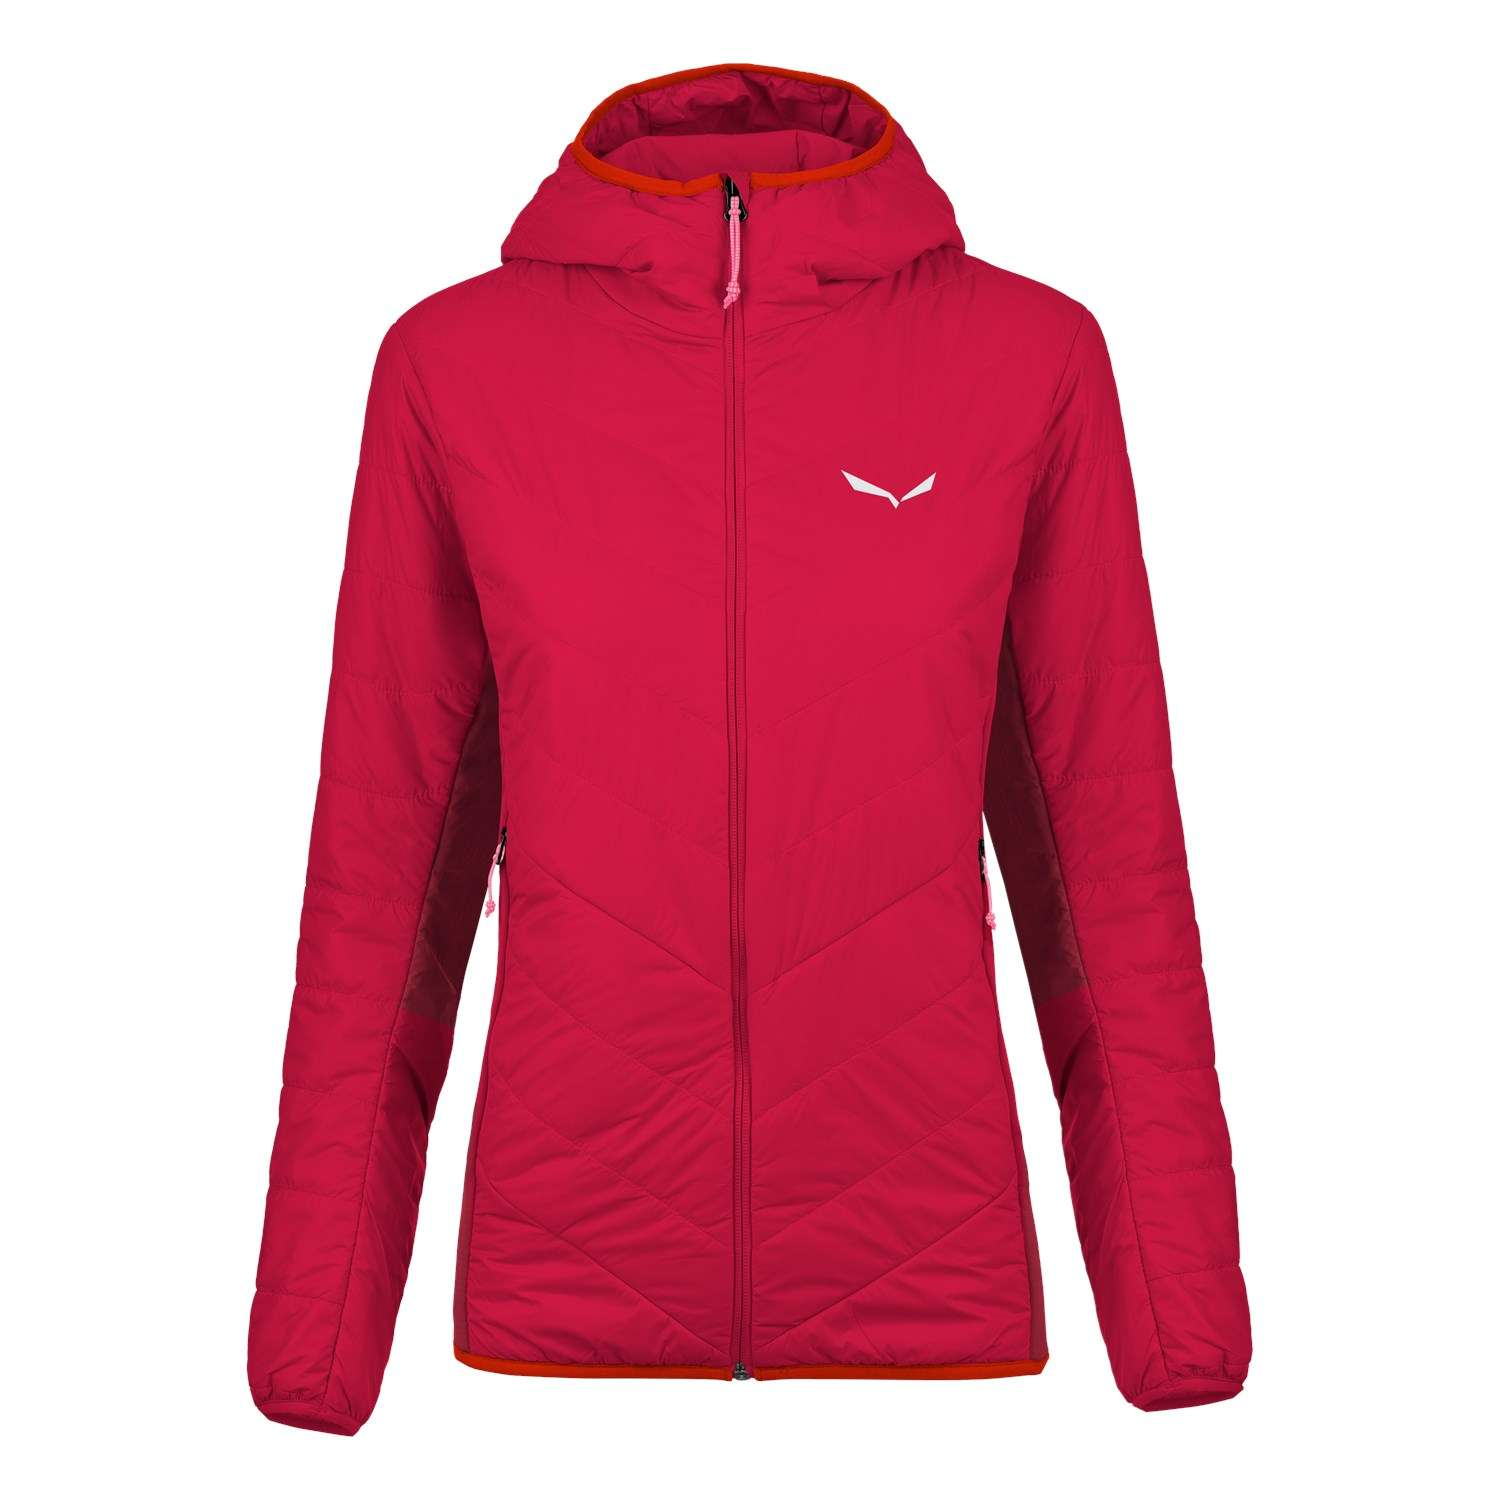 Duran Hybrid 3 Primaloft Women S Jacket Salewa International